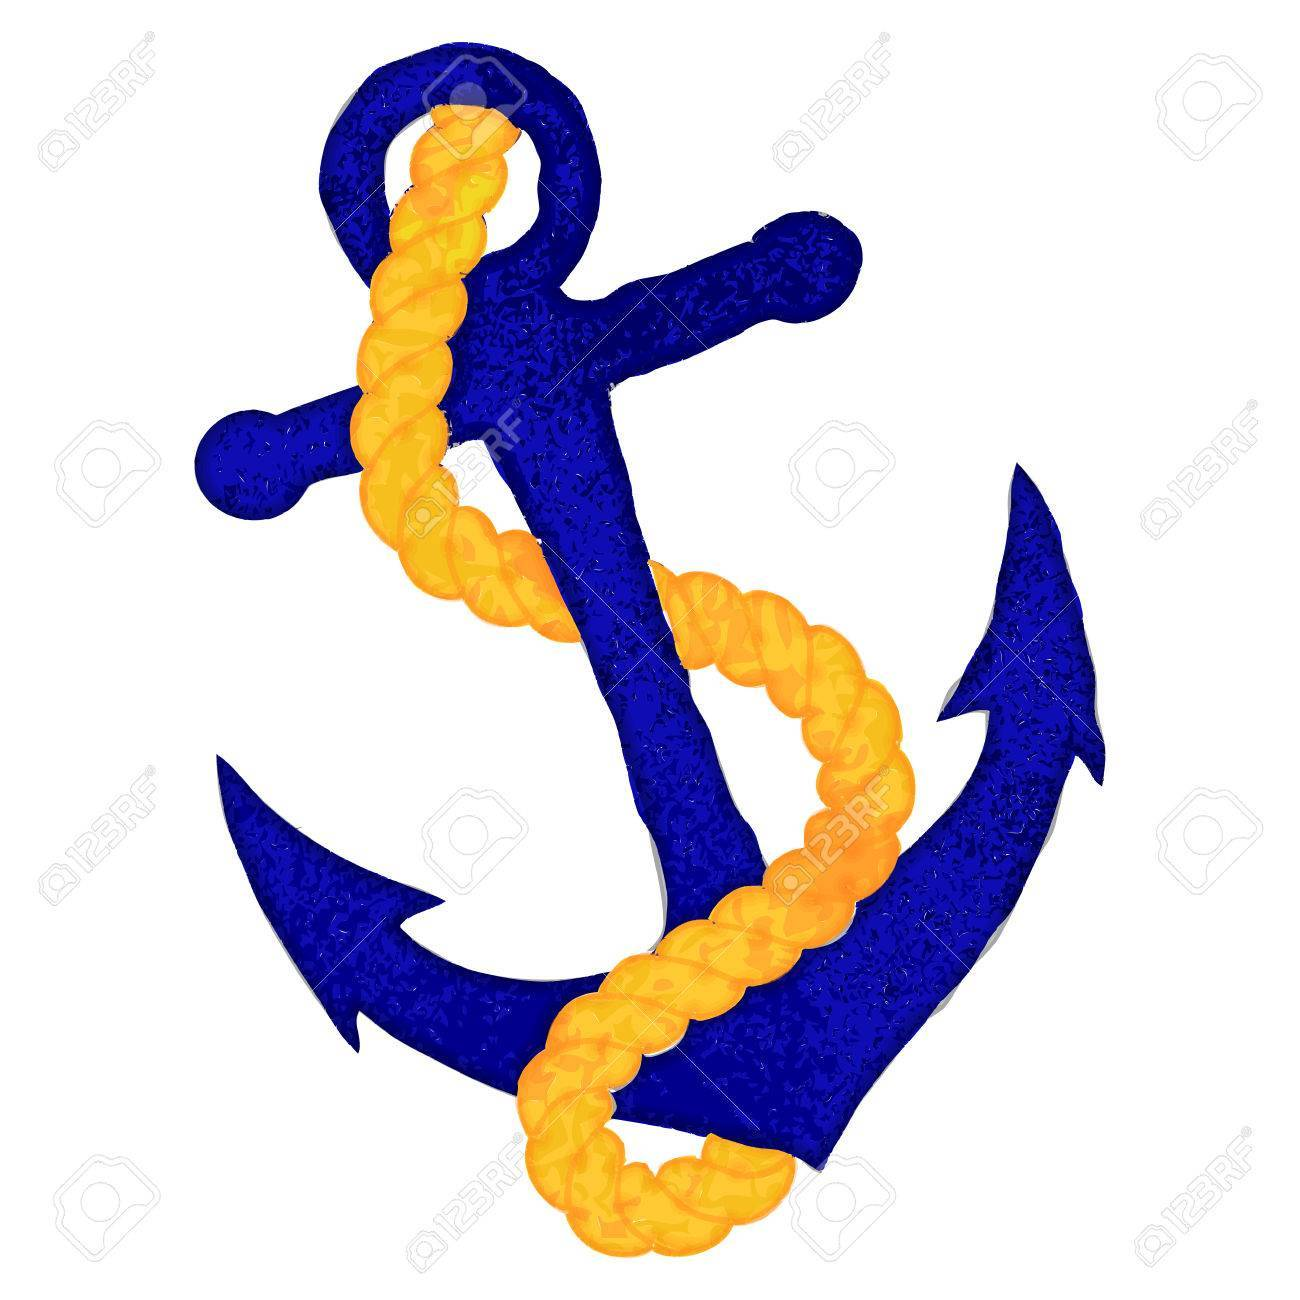 Anchor with rope clipart clip freeuse library Anchor and rope clipart 7 » Clipart Portal clip freeuse library